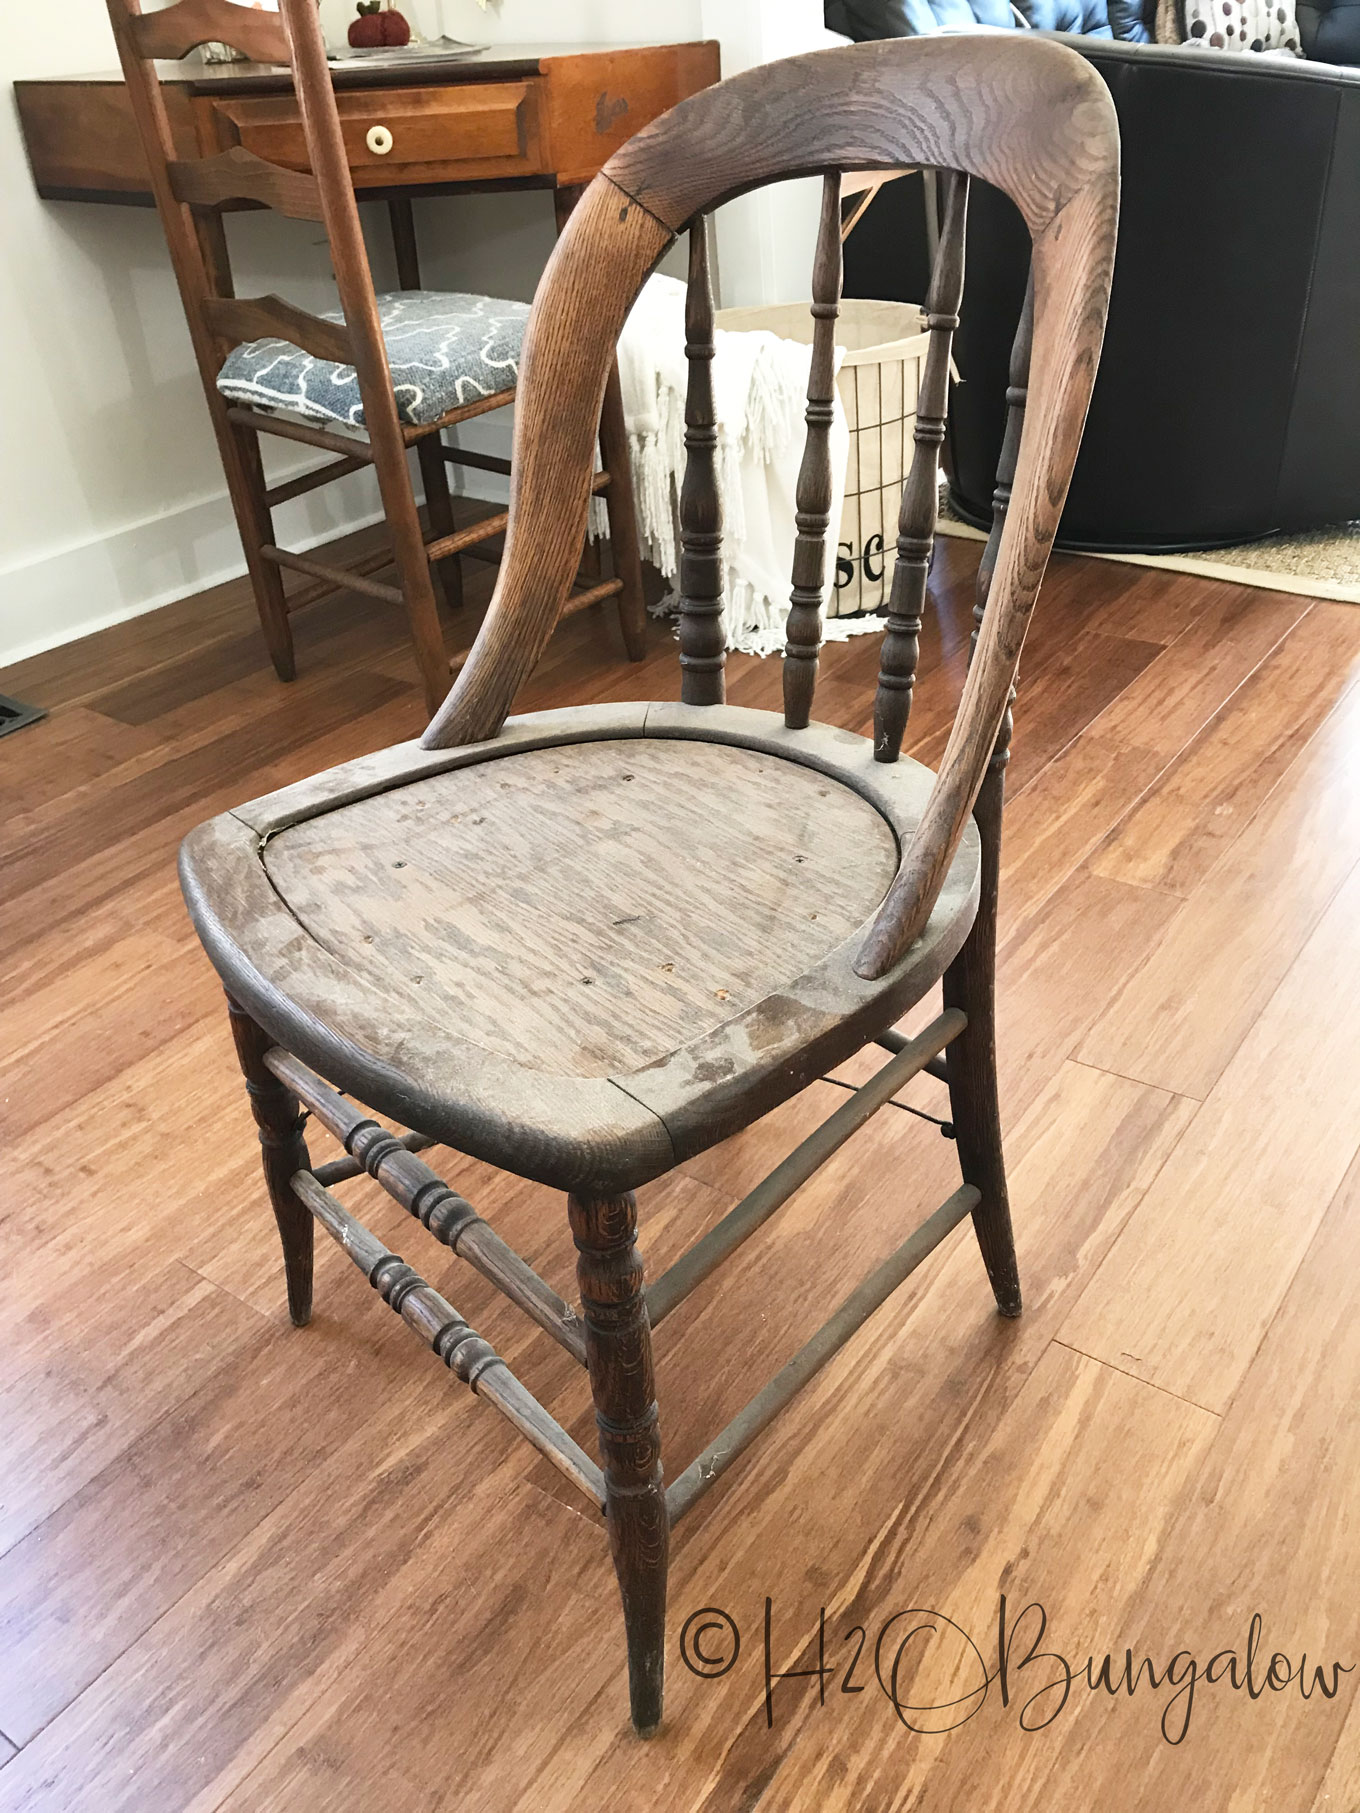 Tutorial for a cowhide chair makeover using real cowhide for the chair seat. Make this a fabulous accent chair with faux animal print or a cowhide.